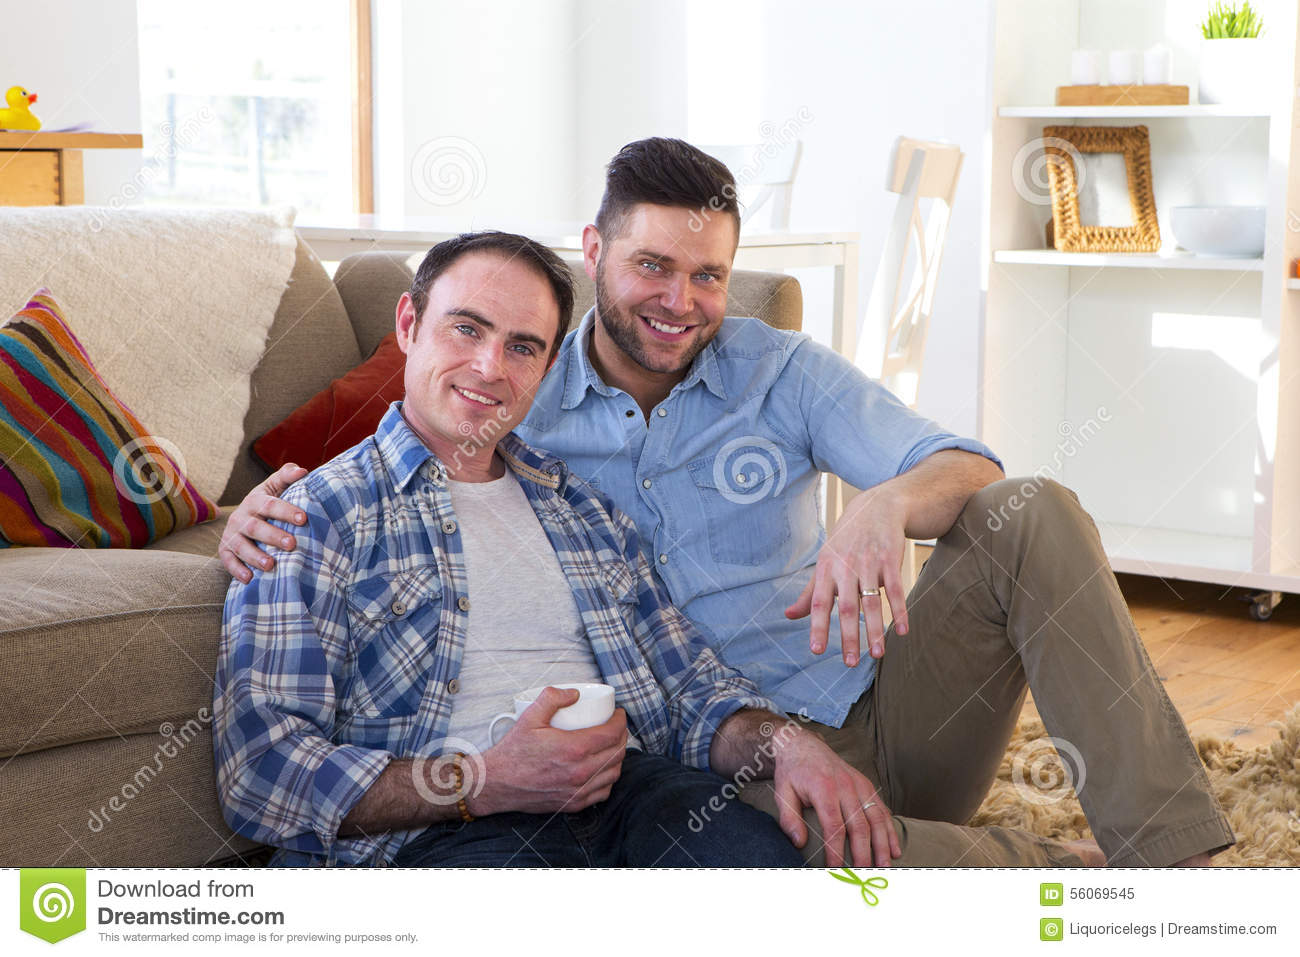 Same sex couple at home